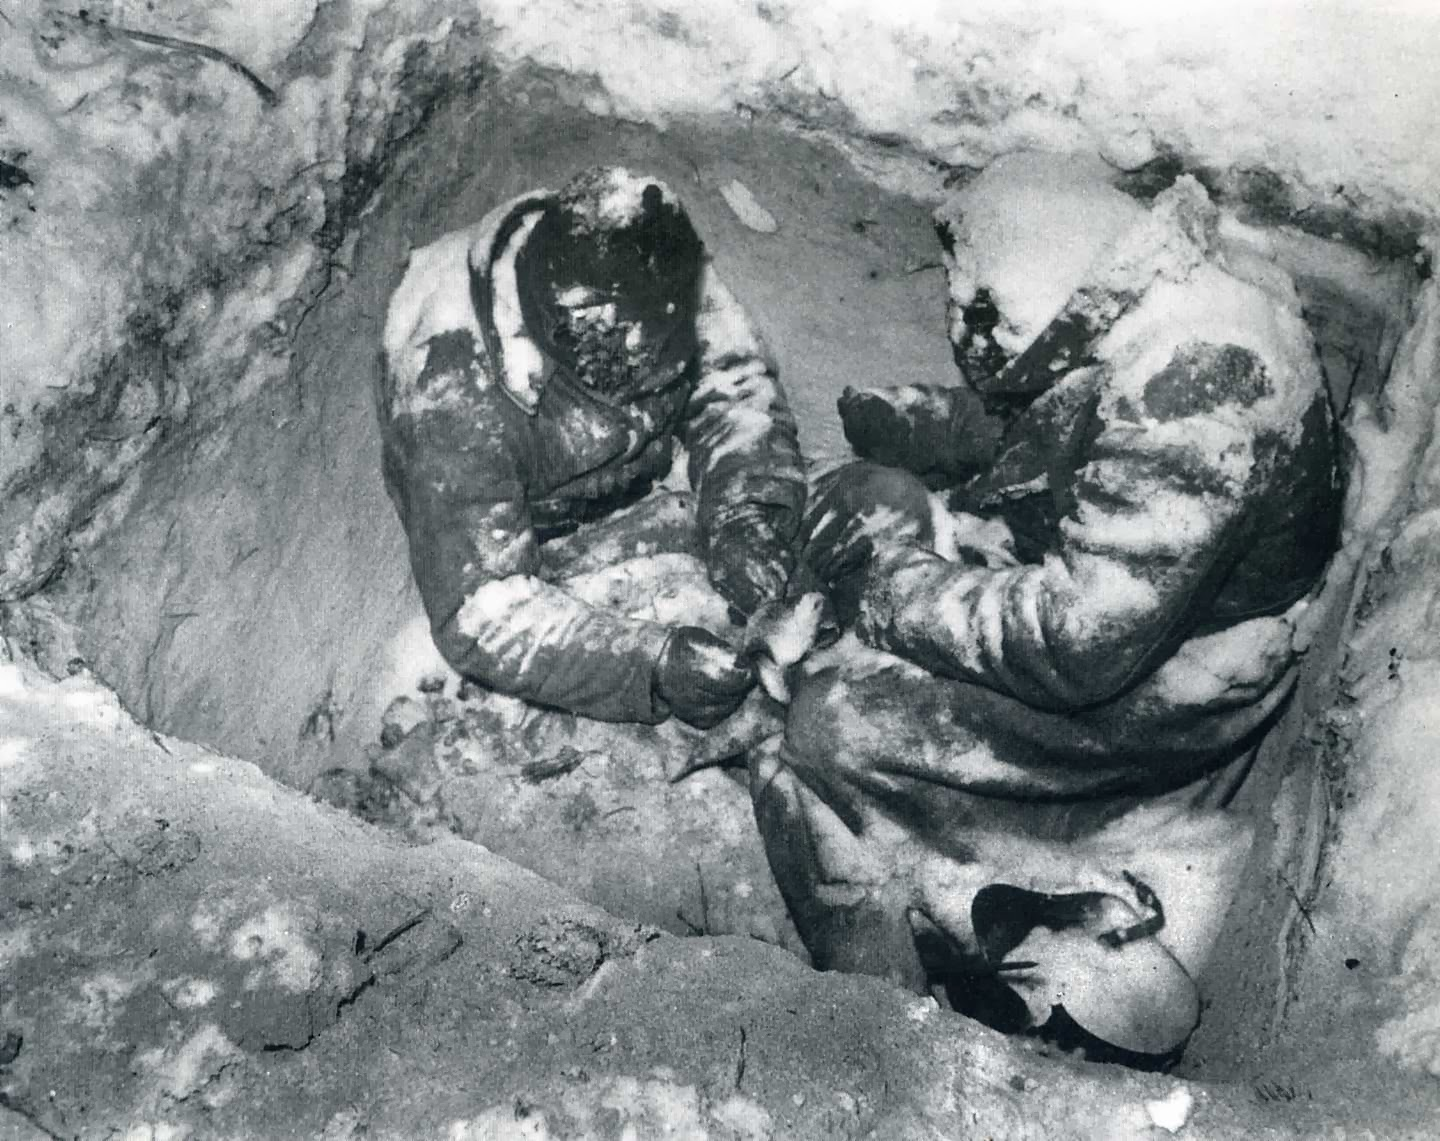 Two Soviet infantrymen who froze to death in their fox hole, Finland, 1940